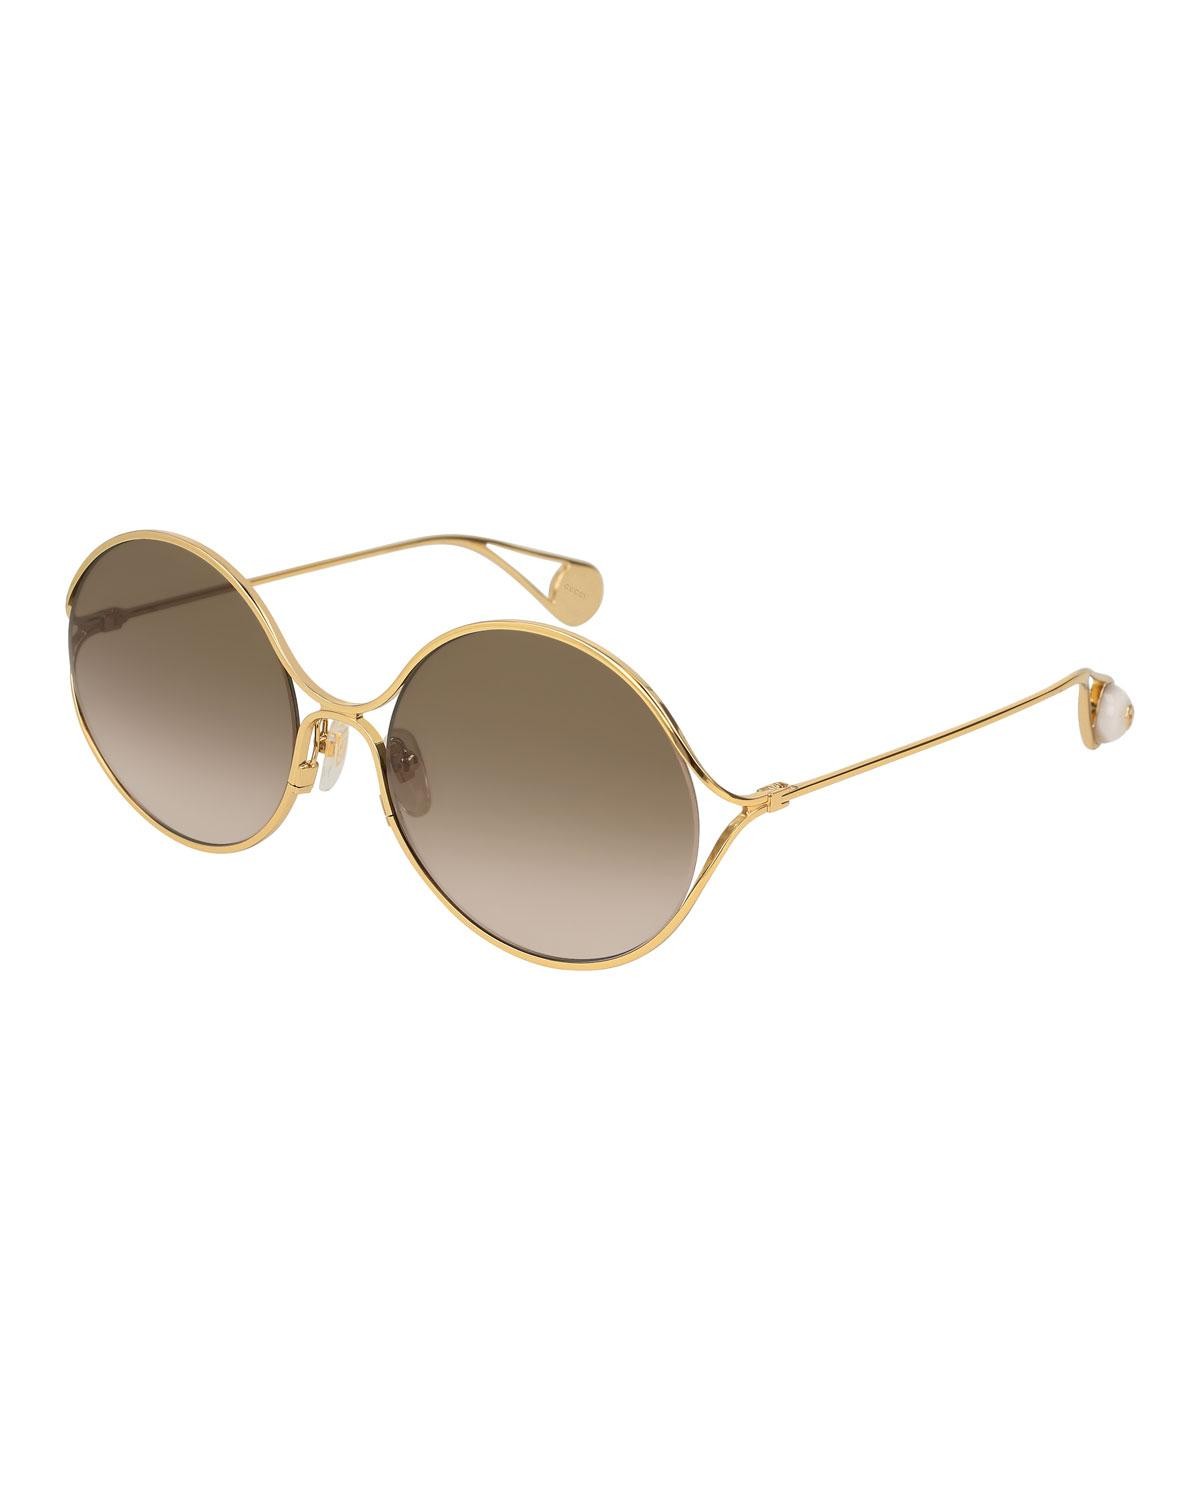 5c918aaf4585a Gucci 58Mm Gradient Lens Round Sunglasses - Gold  Turquoise  Red ...